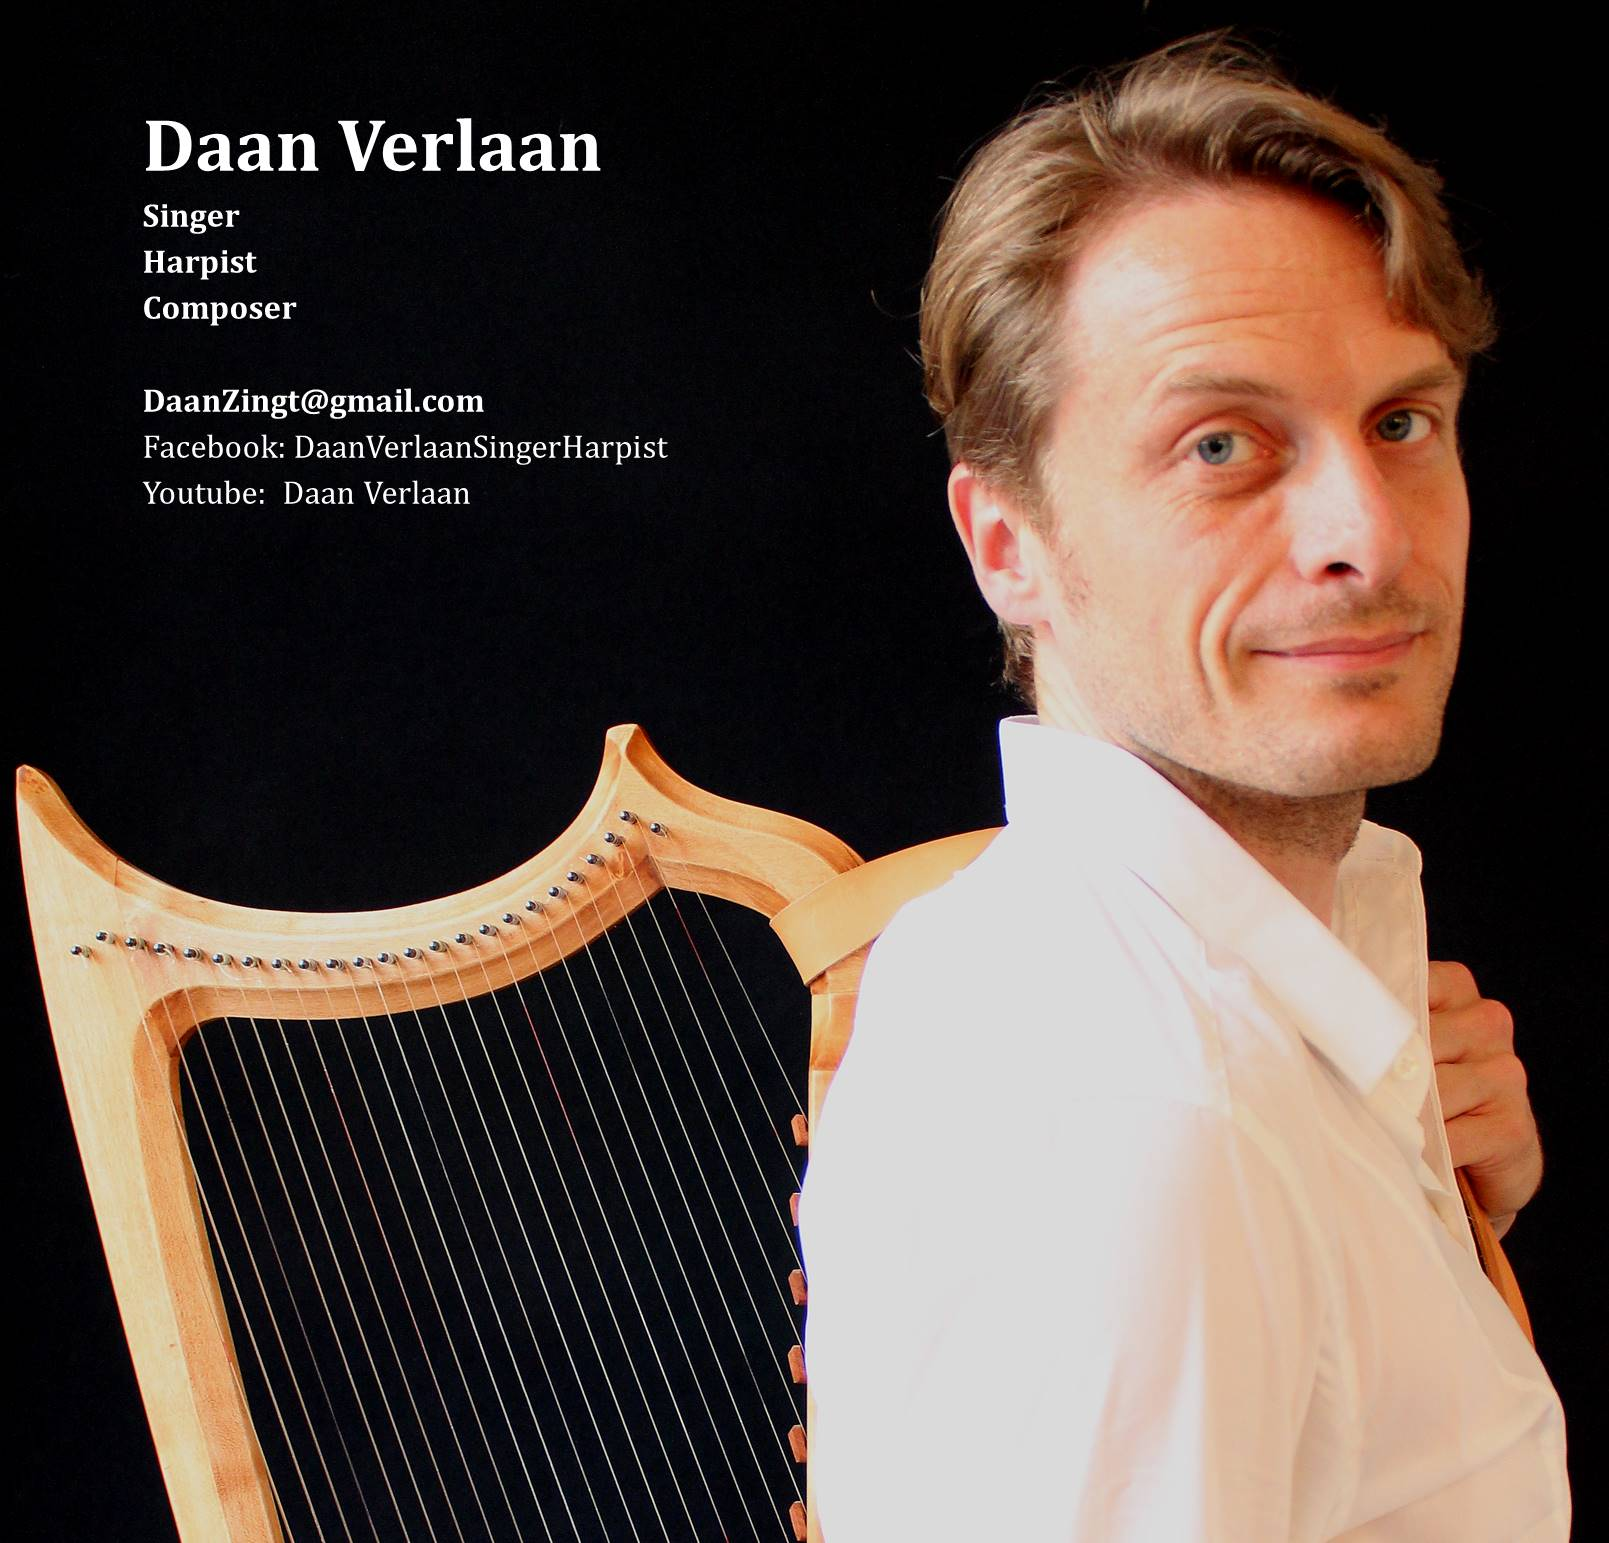 Photo of Daan with harp